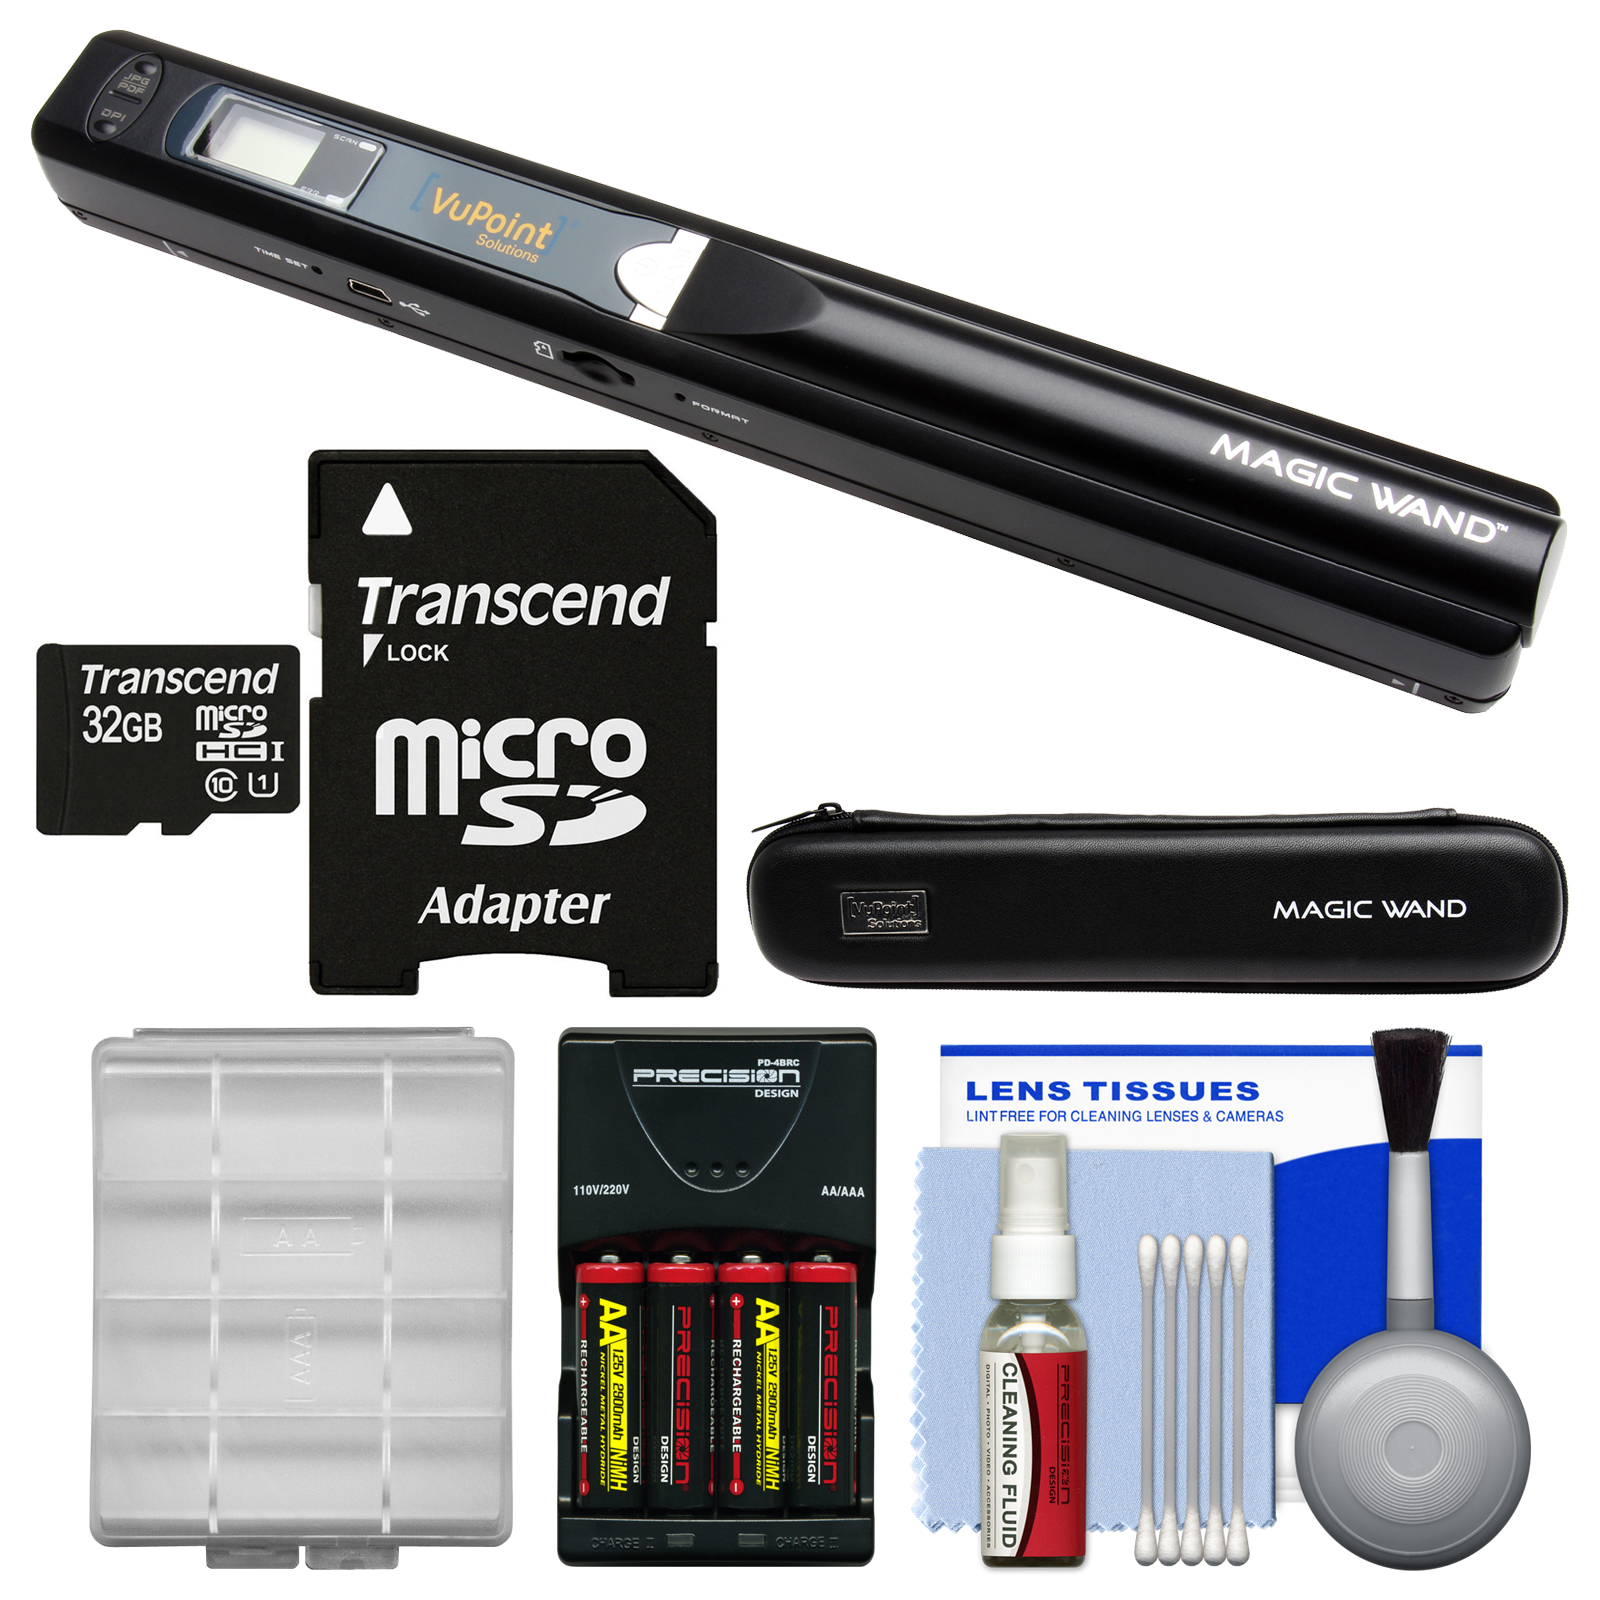 VuPoint Magic Wand Portable Photo & Document Scanner with Case (Black) + 32GB Card + Batteries & Charger + Kit